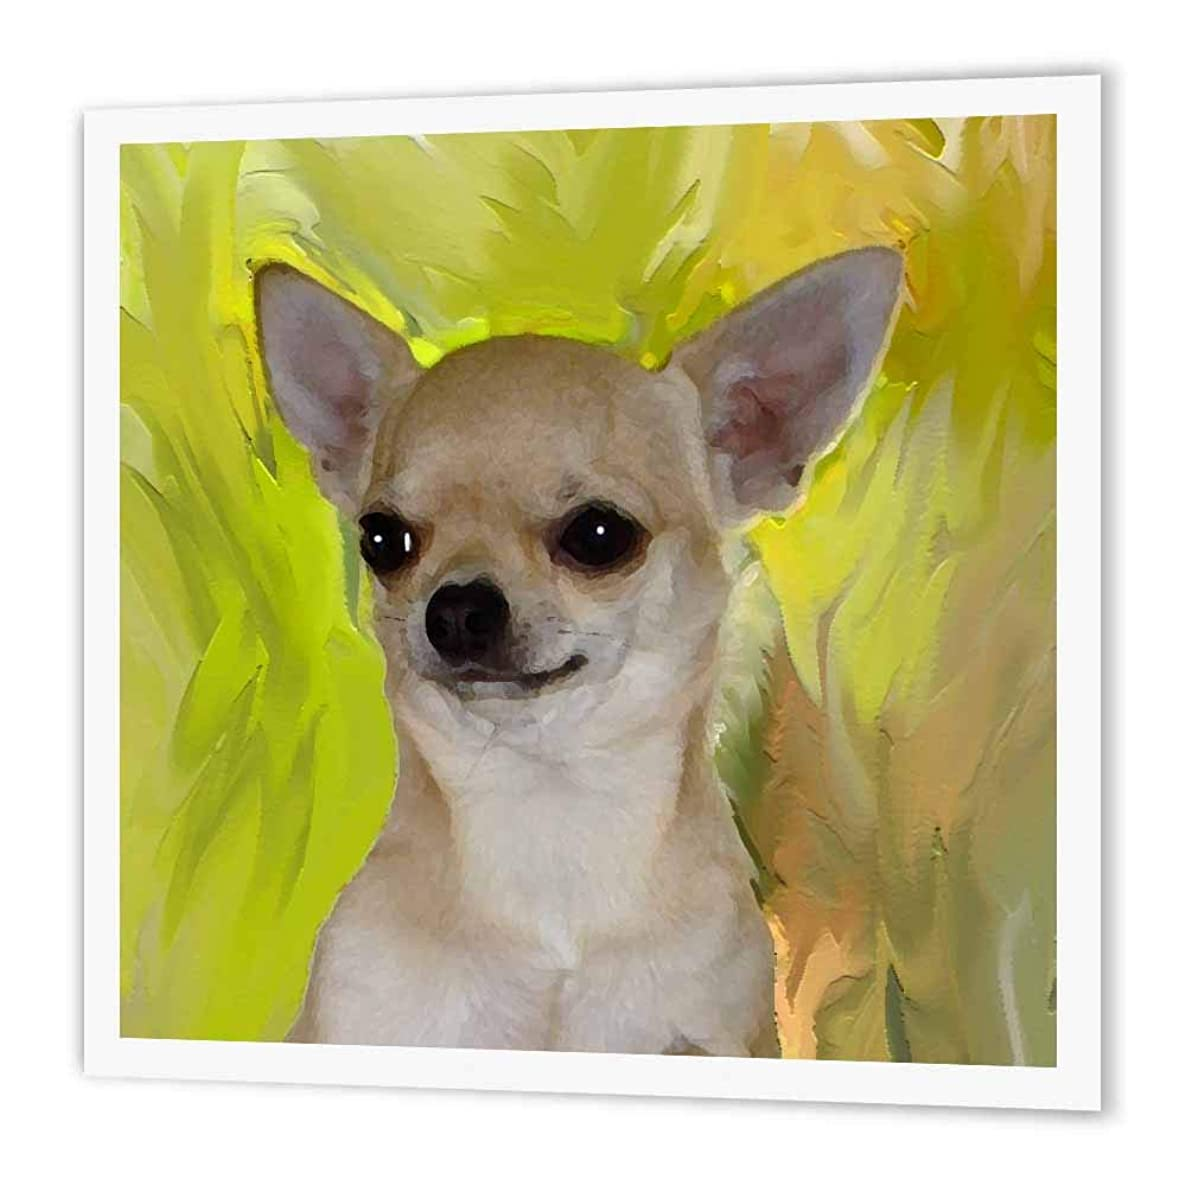 3dRose ht_4465_1 Chihuahua Portrait Iron on Heat Transfer Paper for White Material, 8 by 8